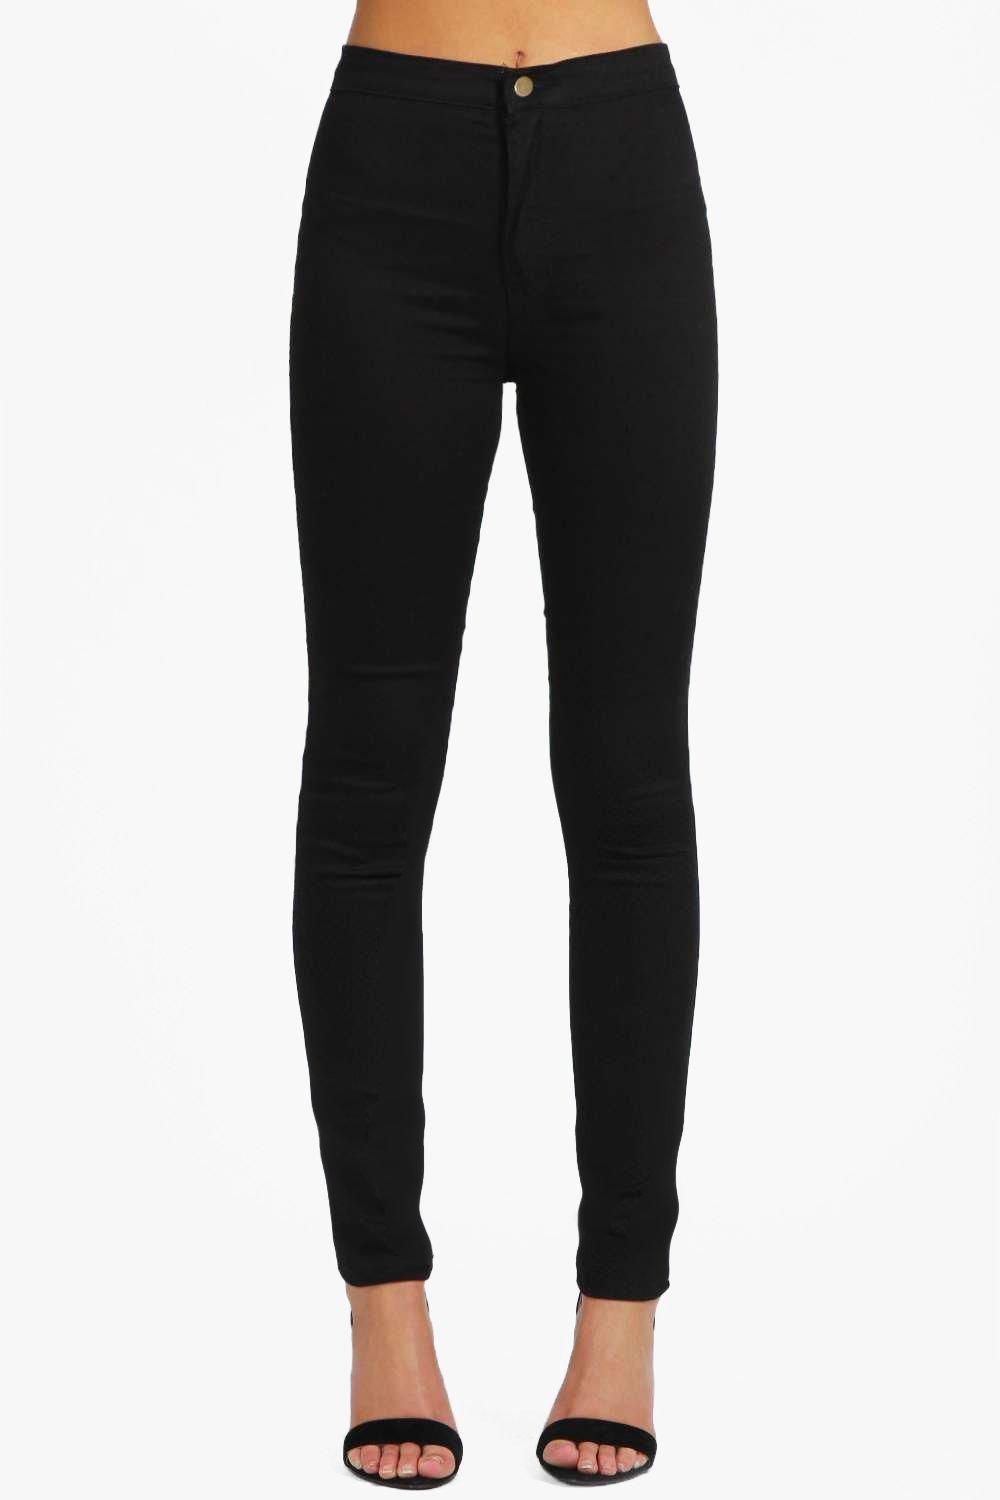 Petite Avah High Rise Disco Jeans